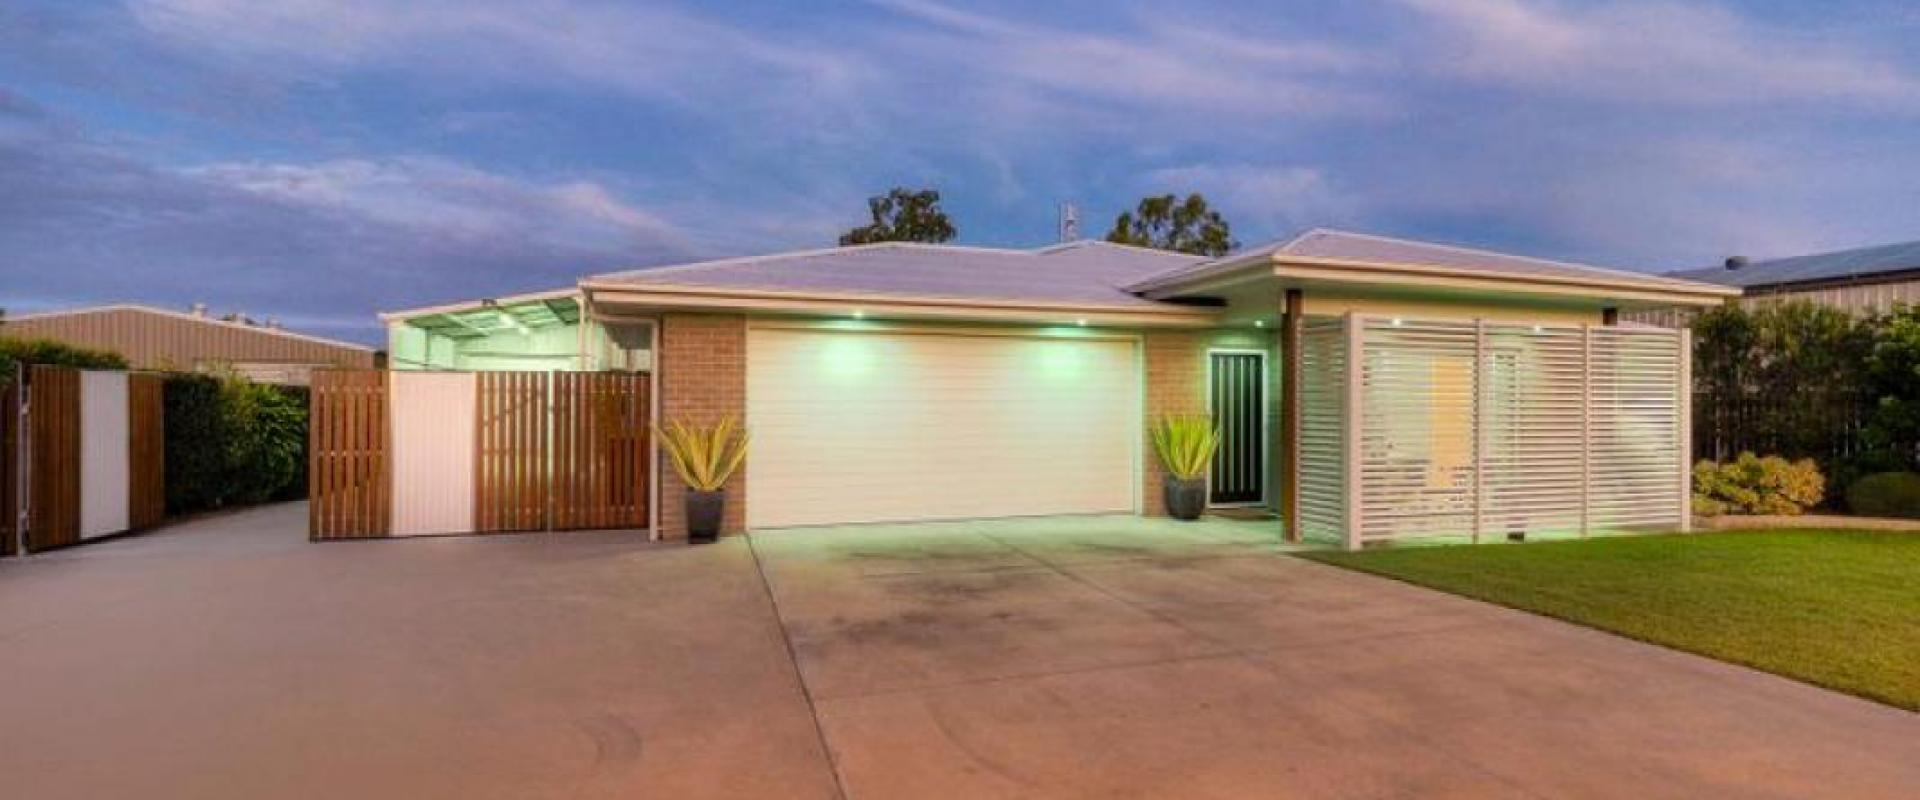 OVER $140,000 SPENT ON ADDITIONAL EXTRAS WHICH INCLUDES A SUBSTANTIAL 9 x 9 SHED WITH 3 METRE HIGH DOORS, 8 x 4.5 CANOPY, 9 x 3 AWNING, SEE LIST BELOW